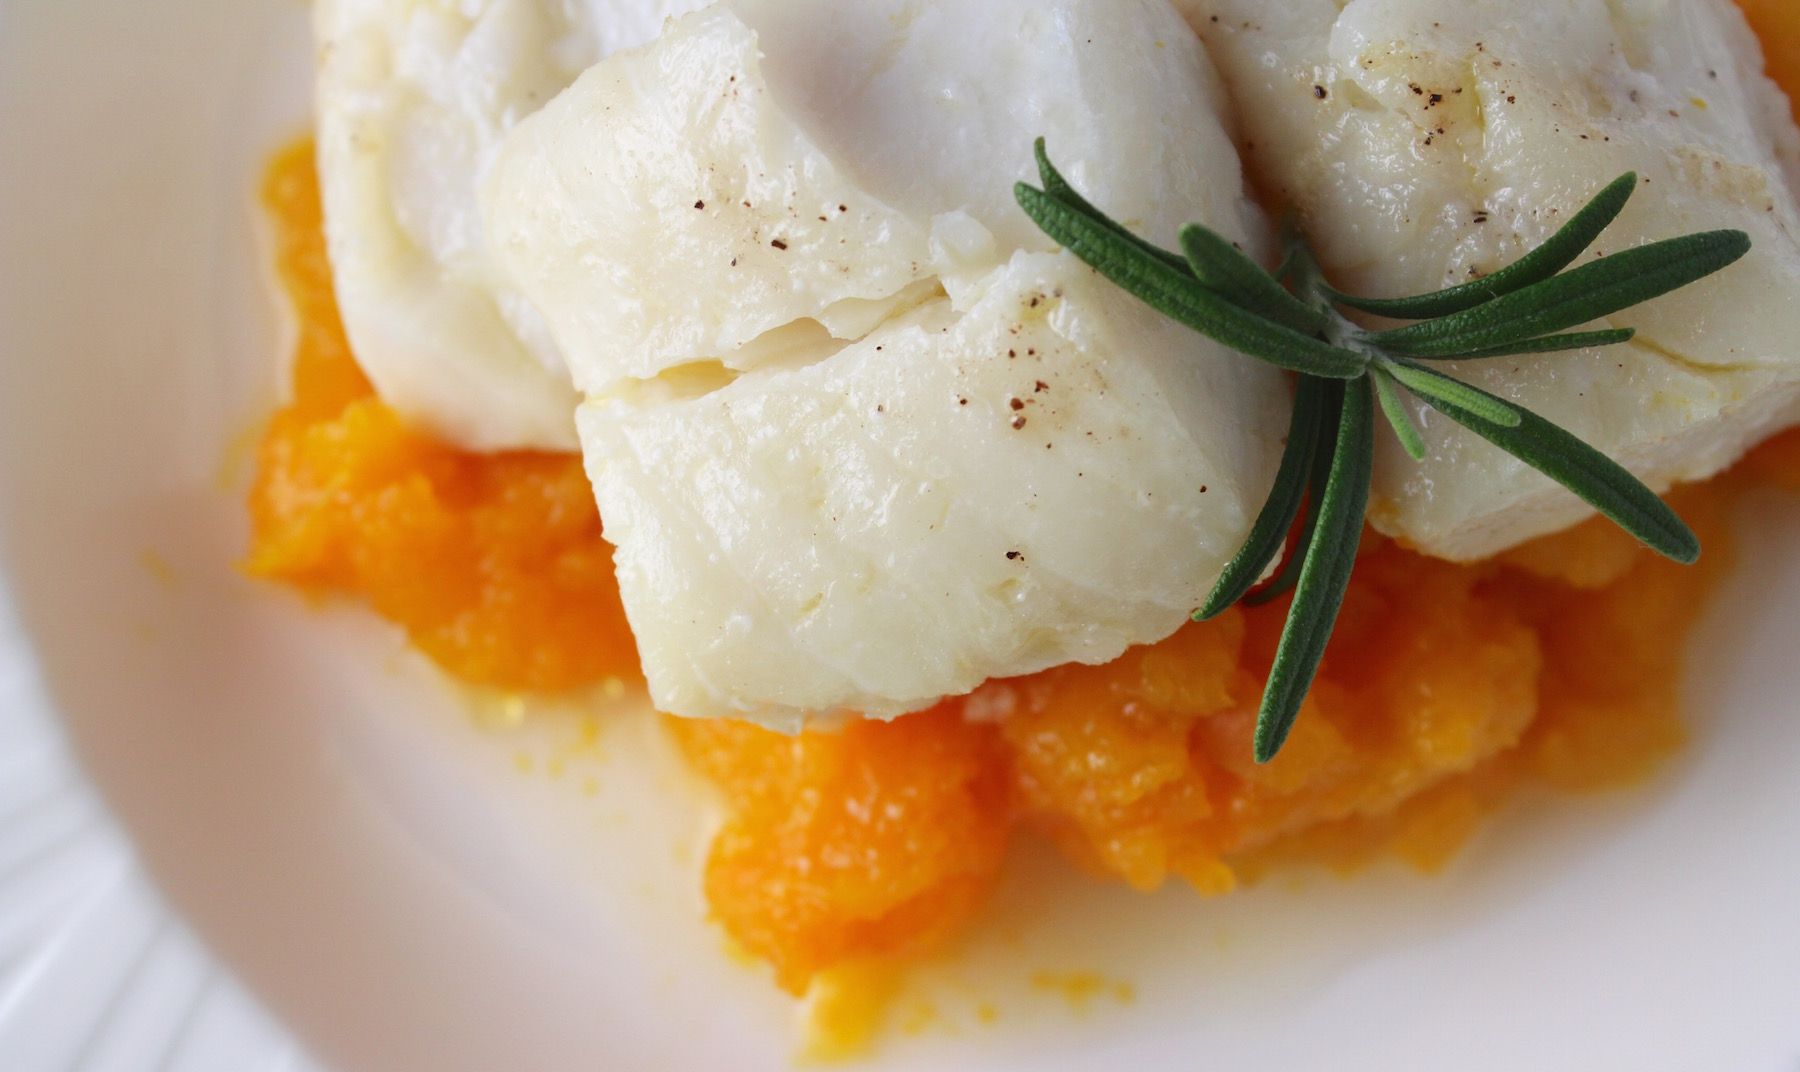 Cod Poached in Rosemary Olive Oil